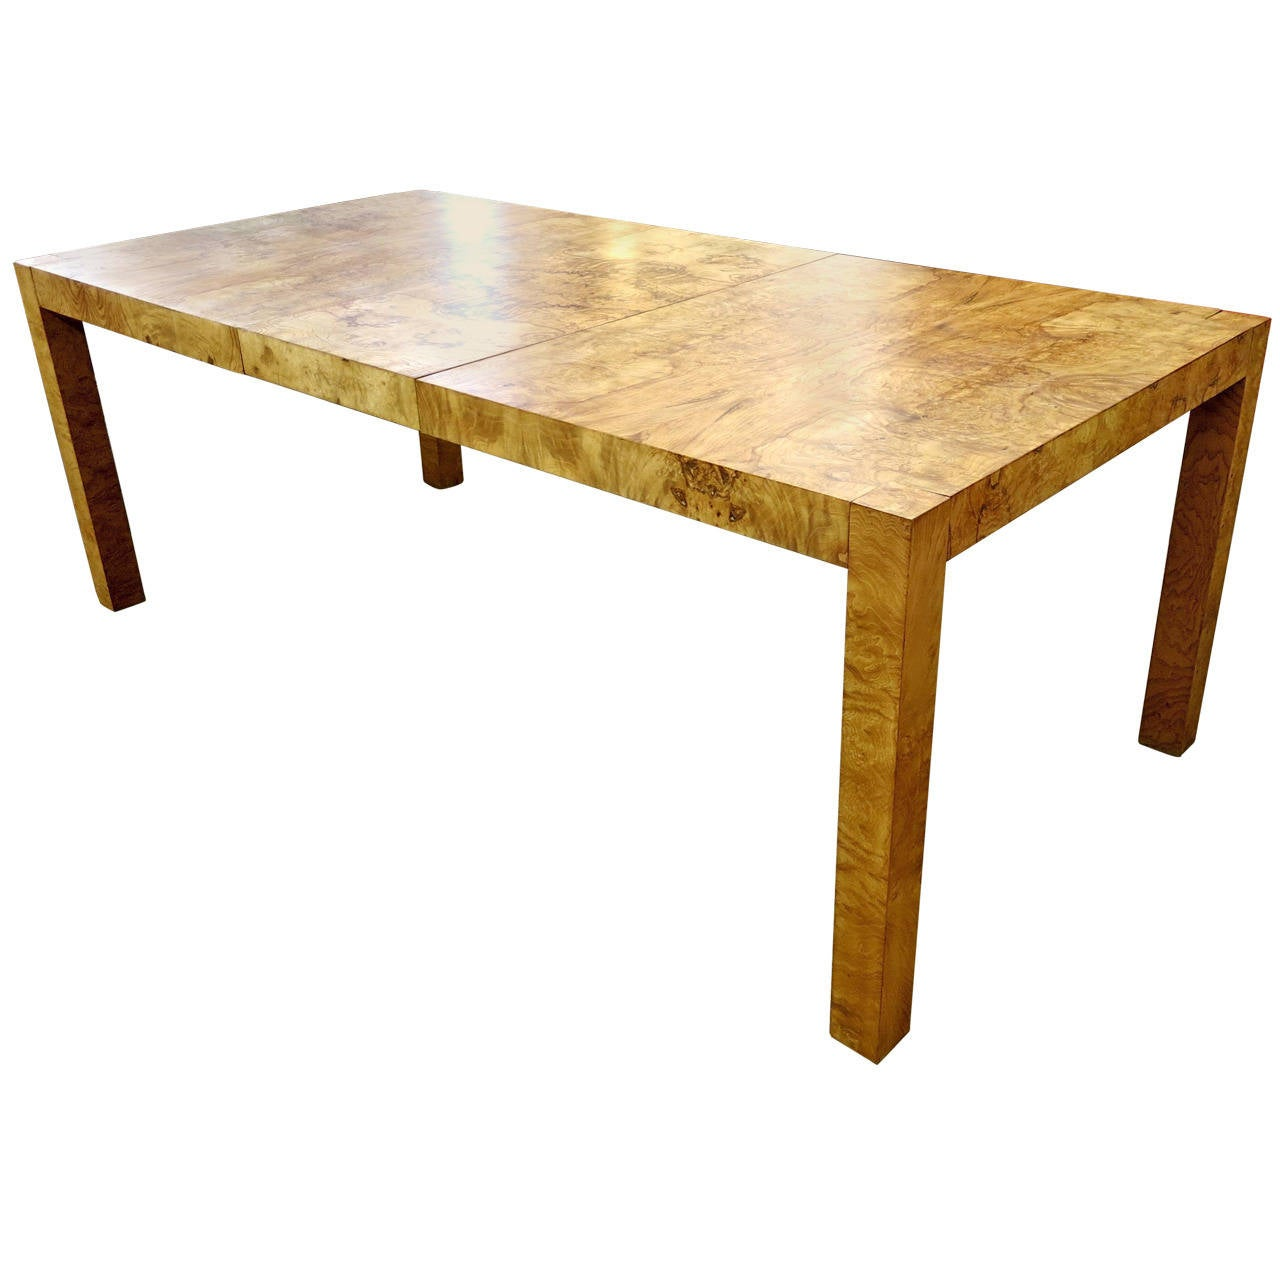 Burled wood or burl wood parsons style mid century modern for Styling a dining table